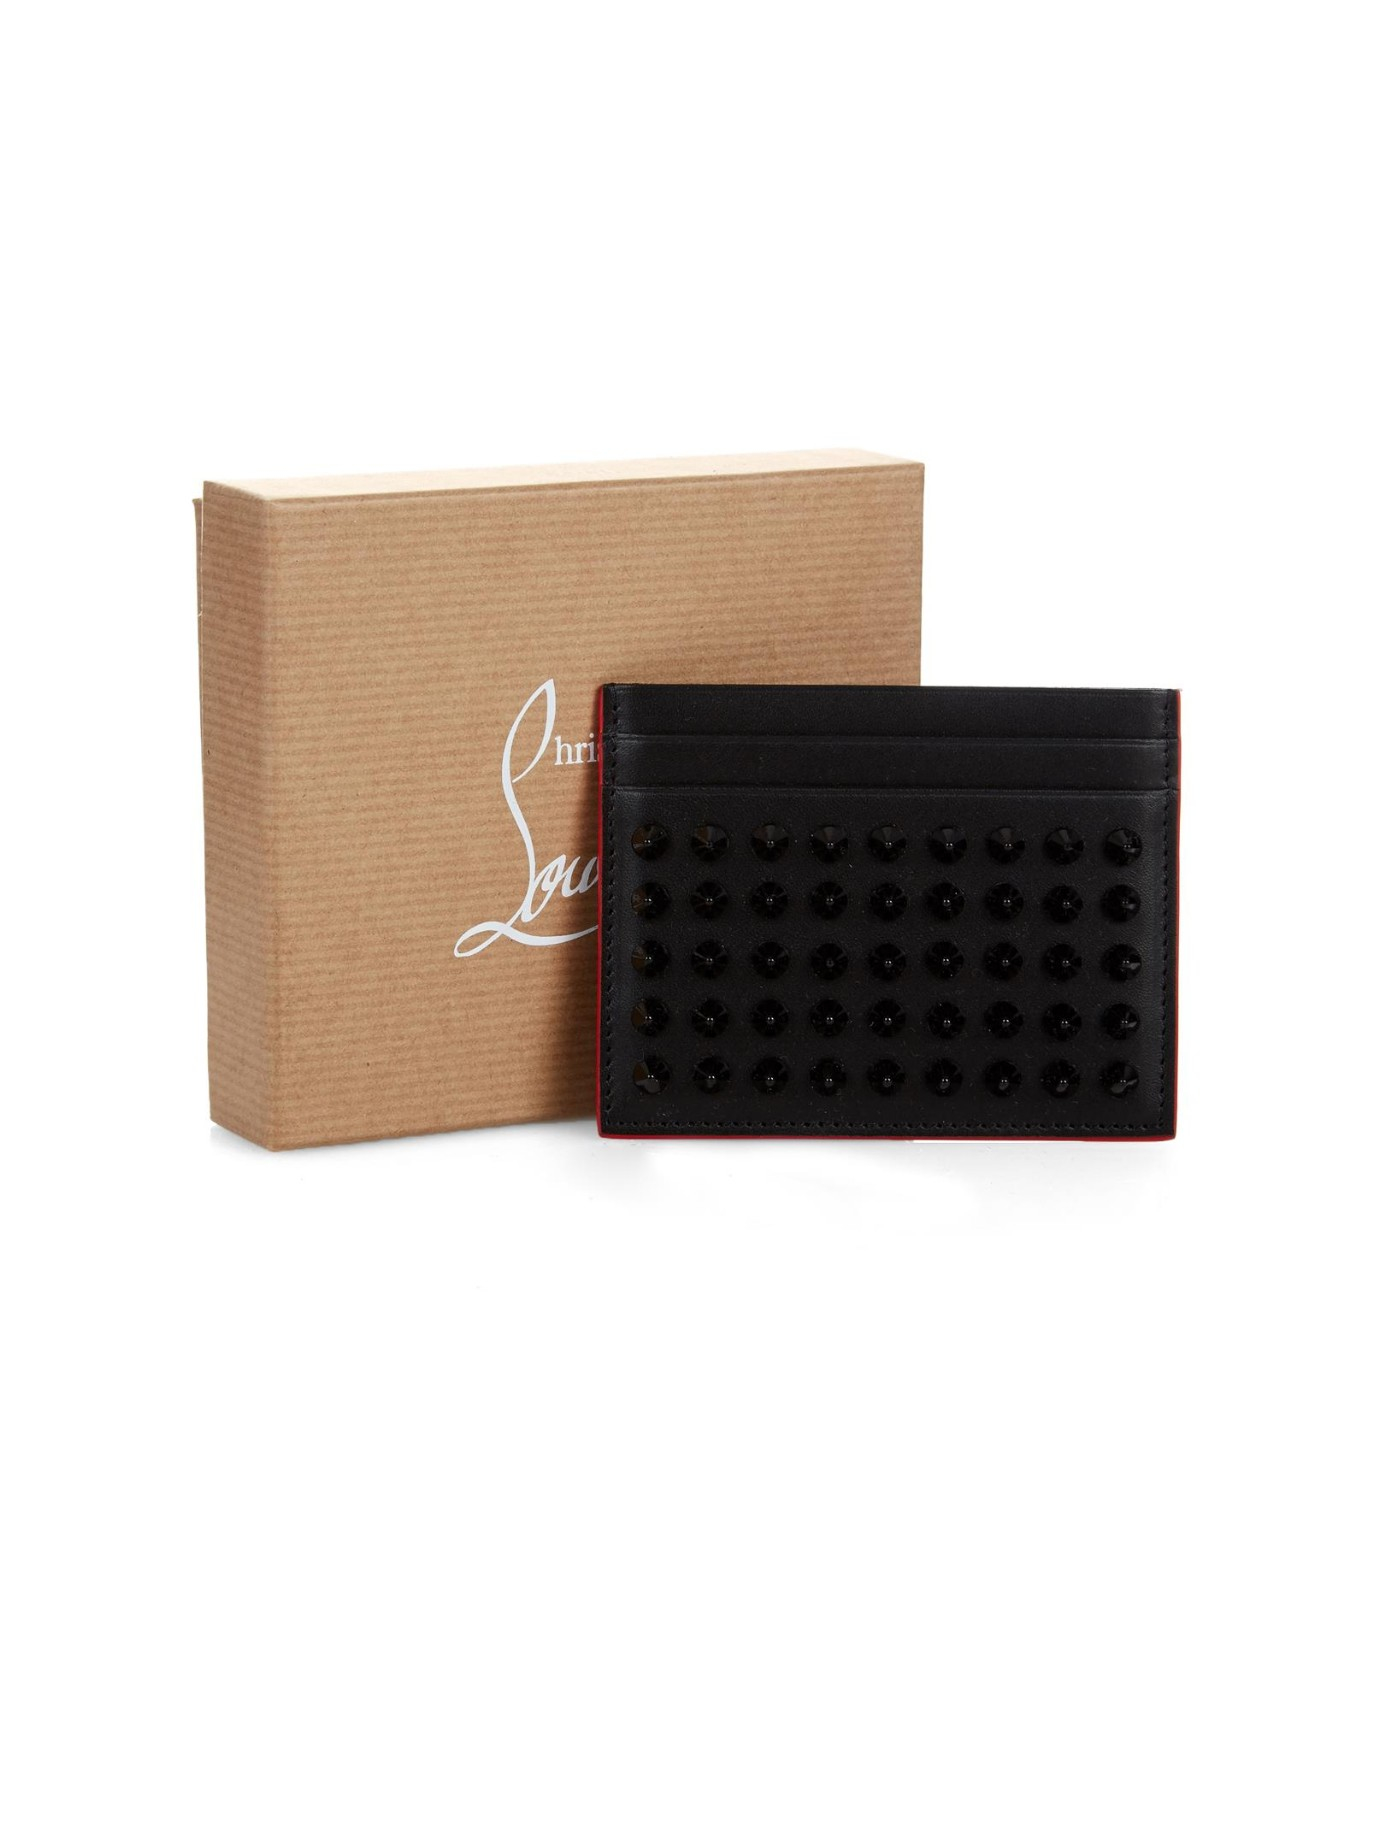 b3907c6a56a0 Lyst - Christian Louboutin Kios Spikes Leather Cardholder in Black for Men